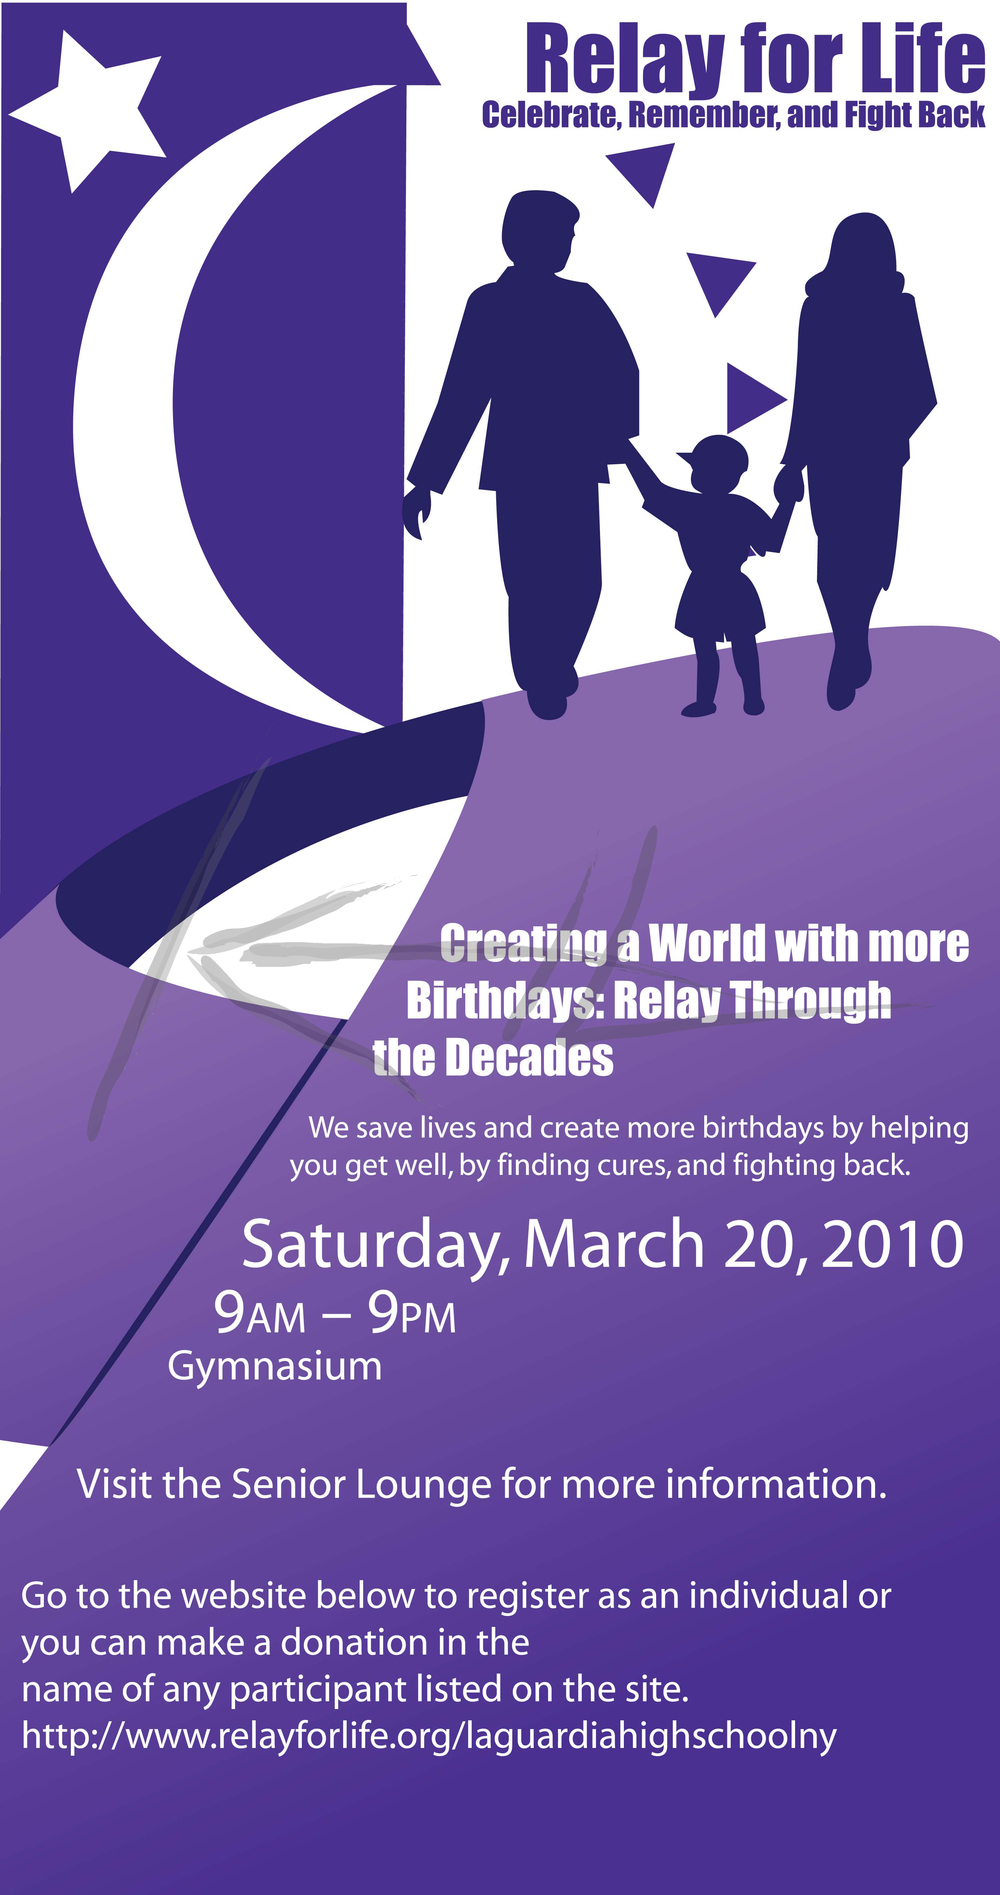 Relay for Life [2010] (Poster)